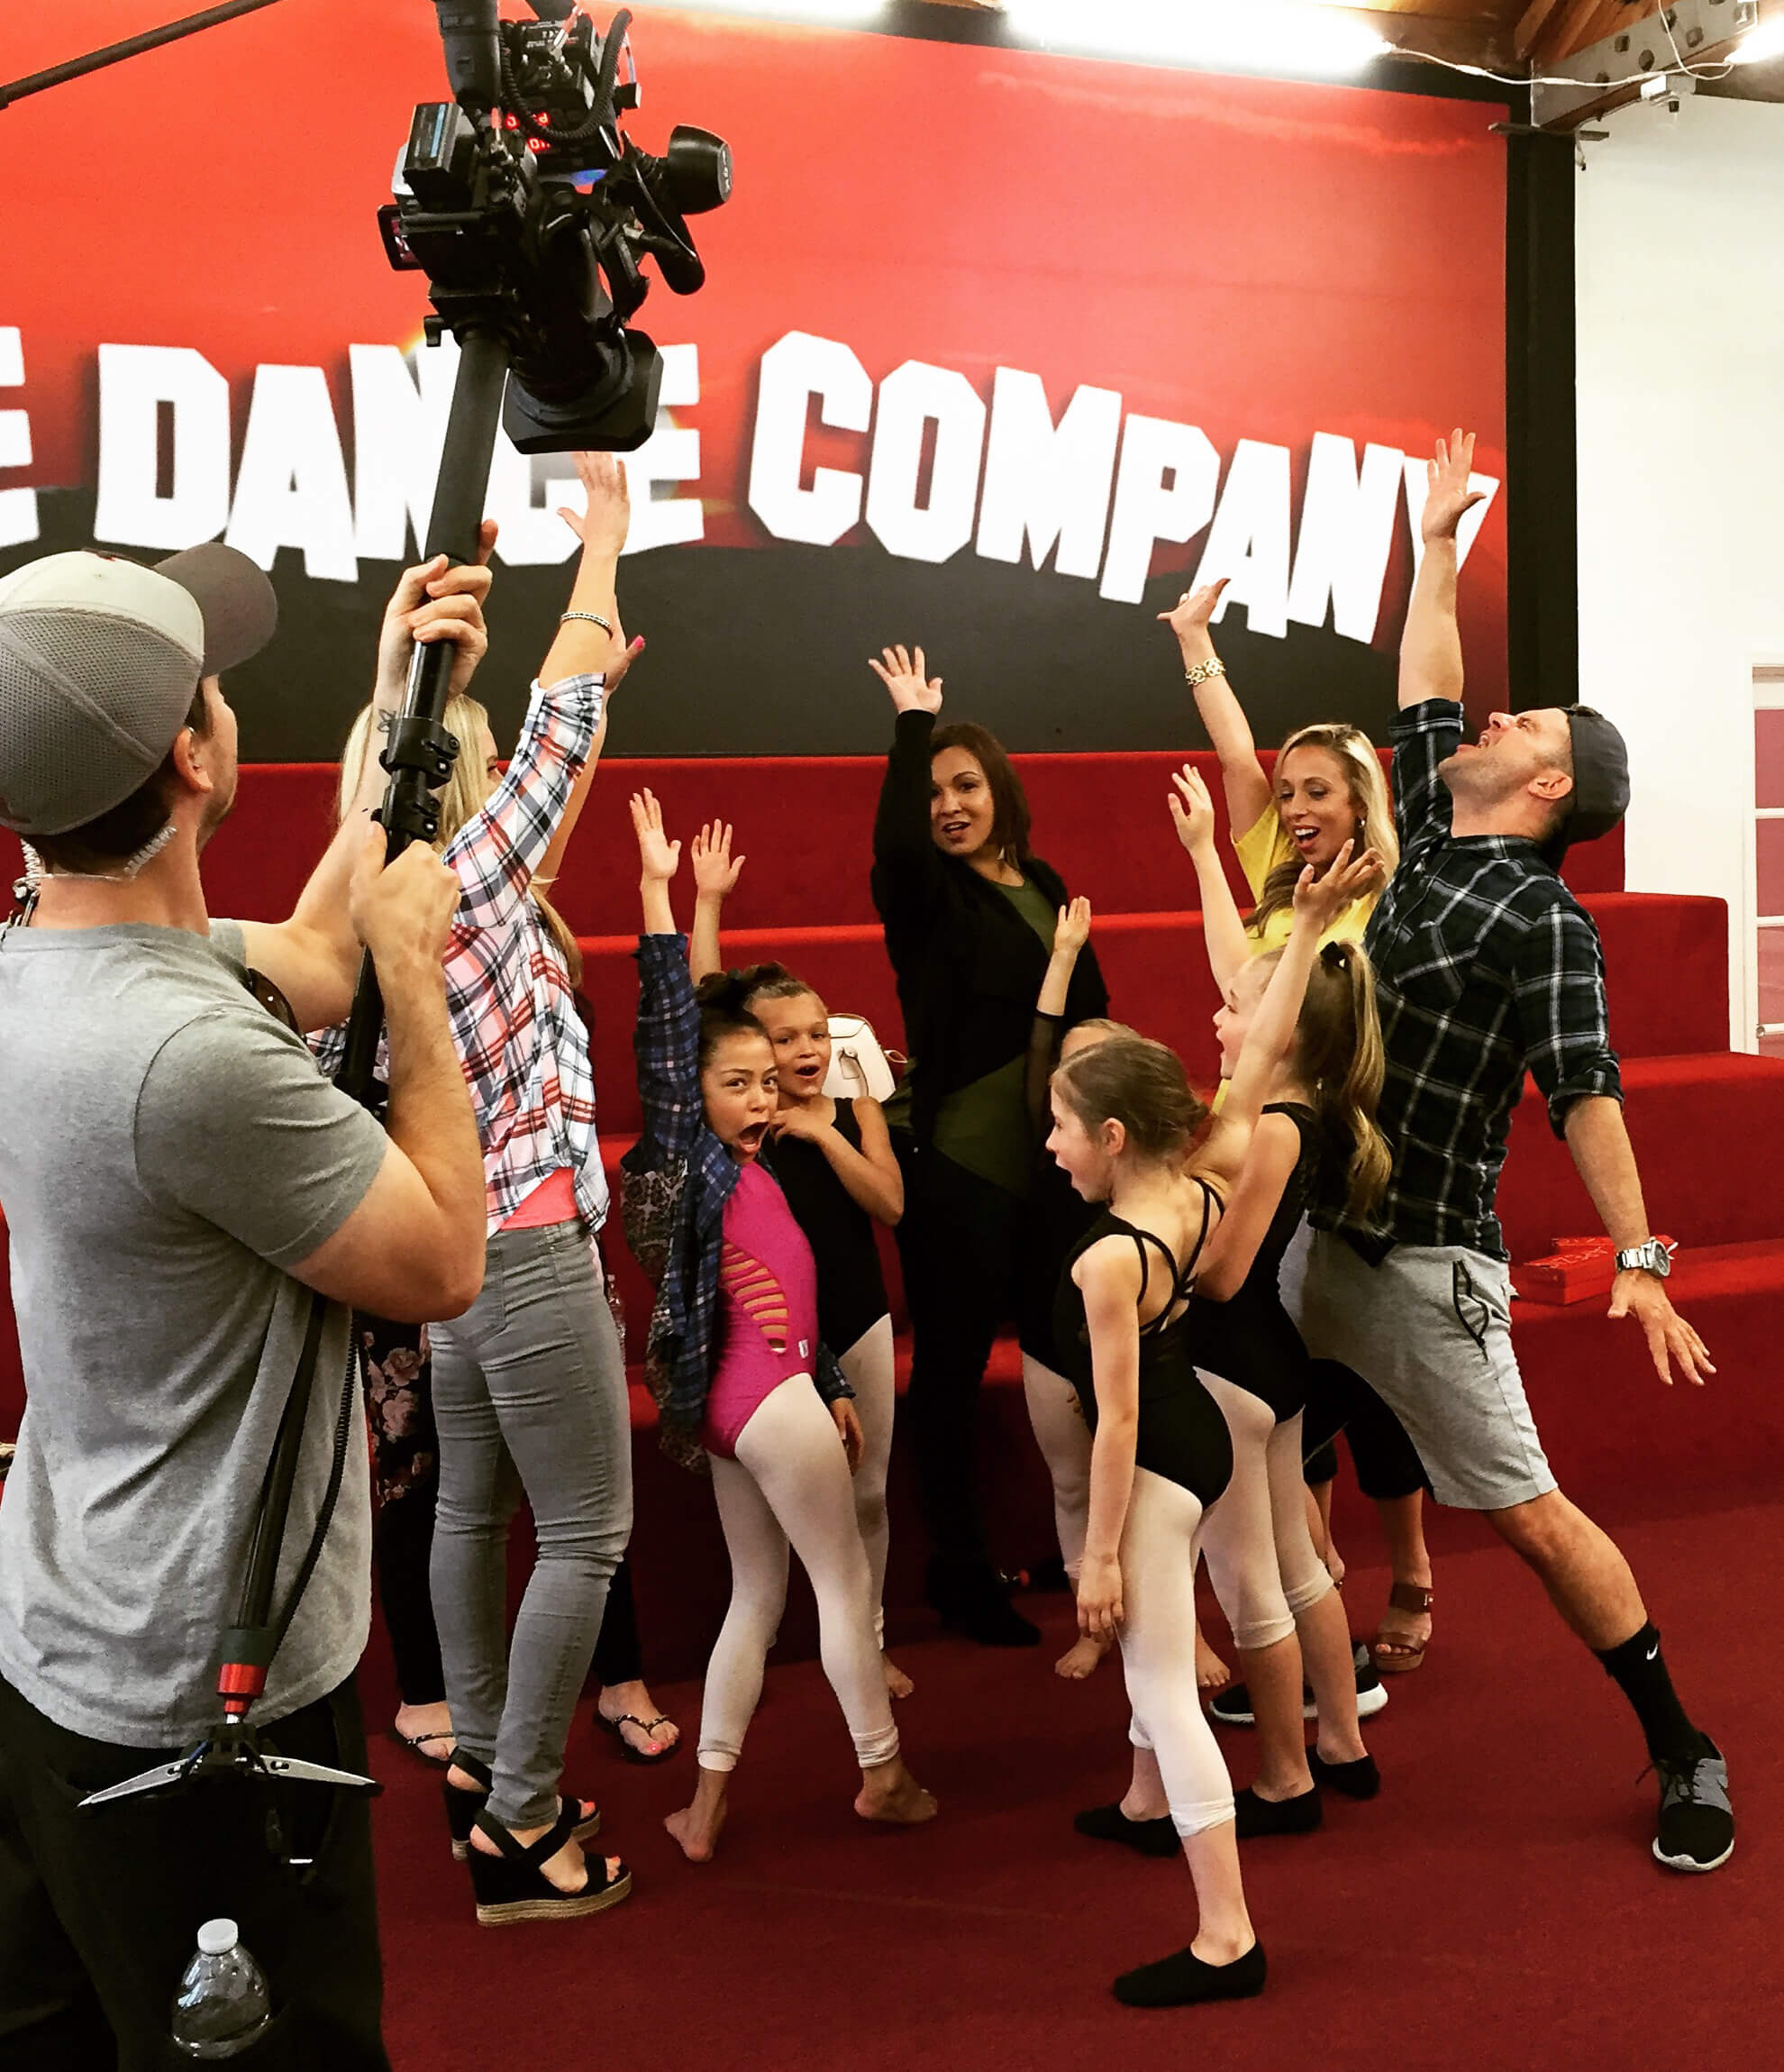 Tv-commercials-dance-moms-asher-entertainment-teens-kids-tv-show